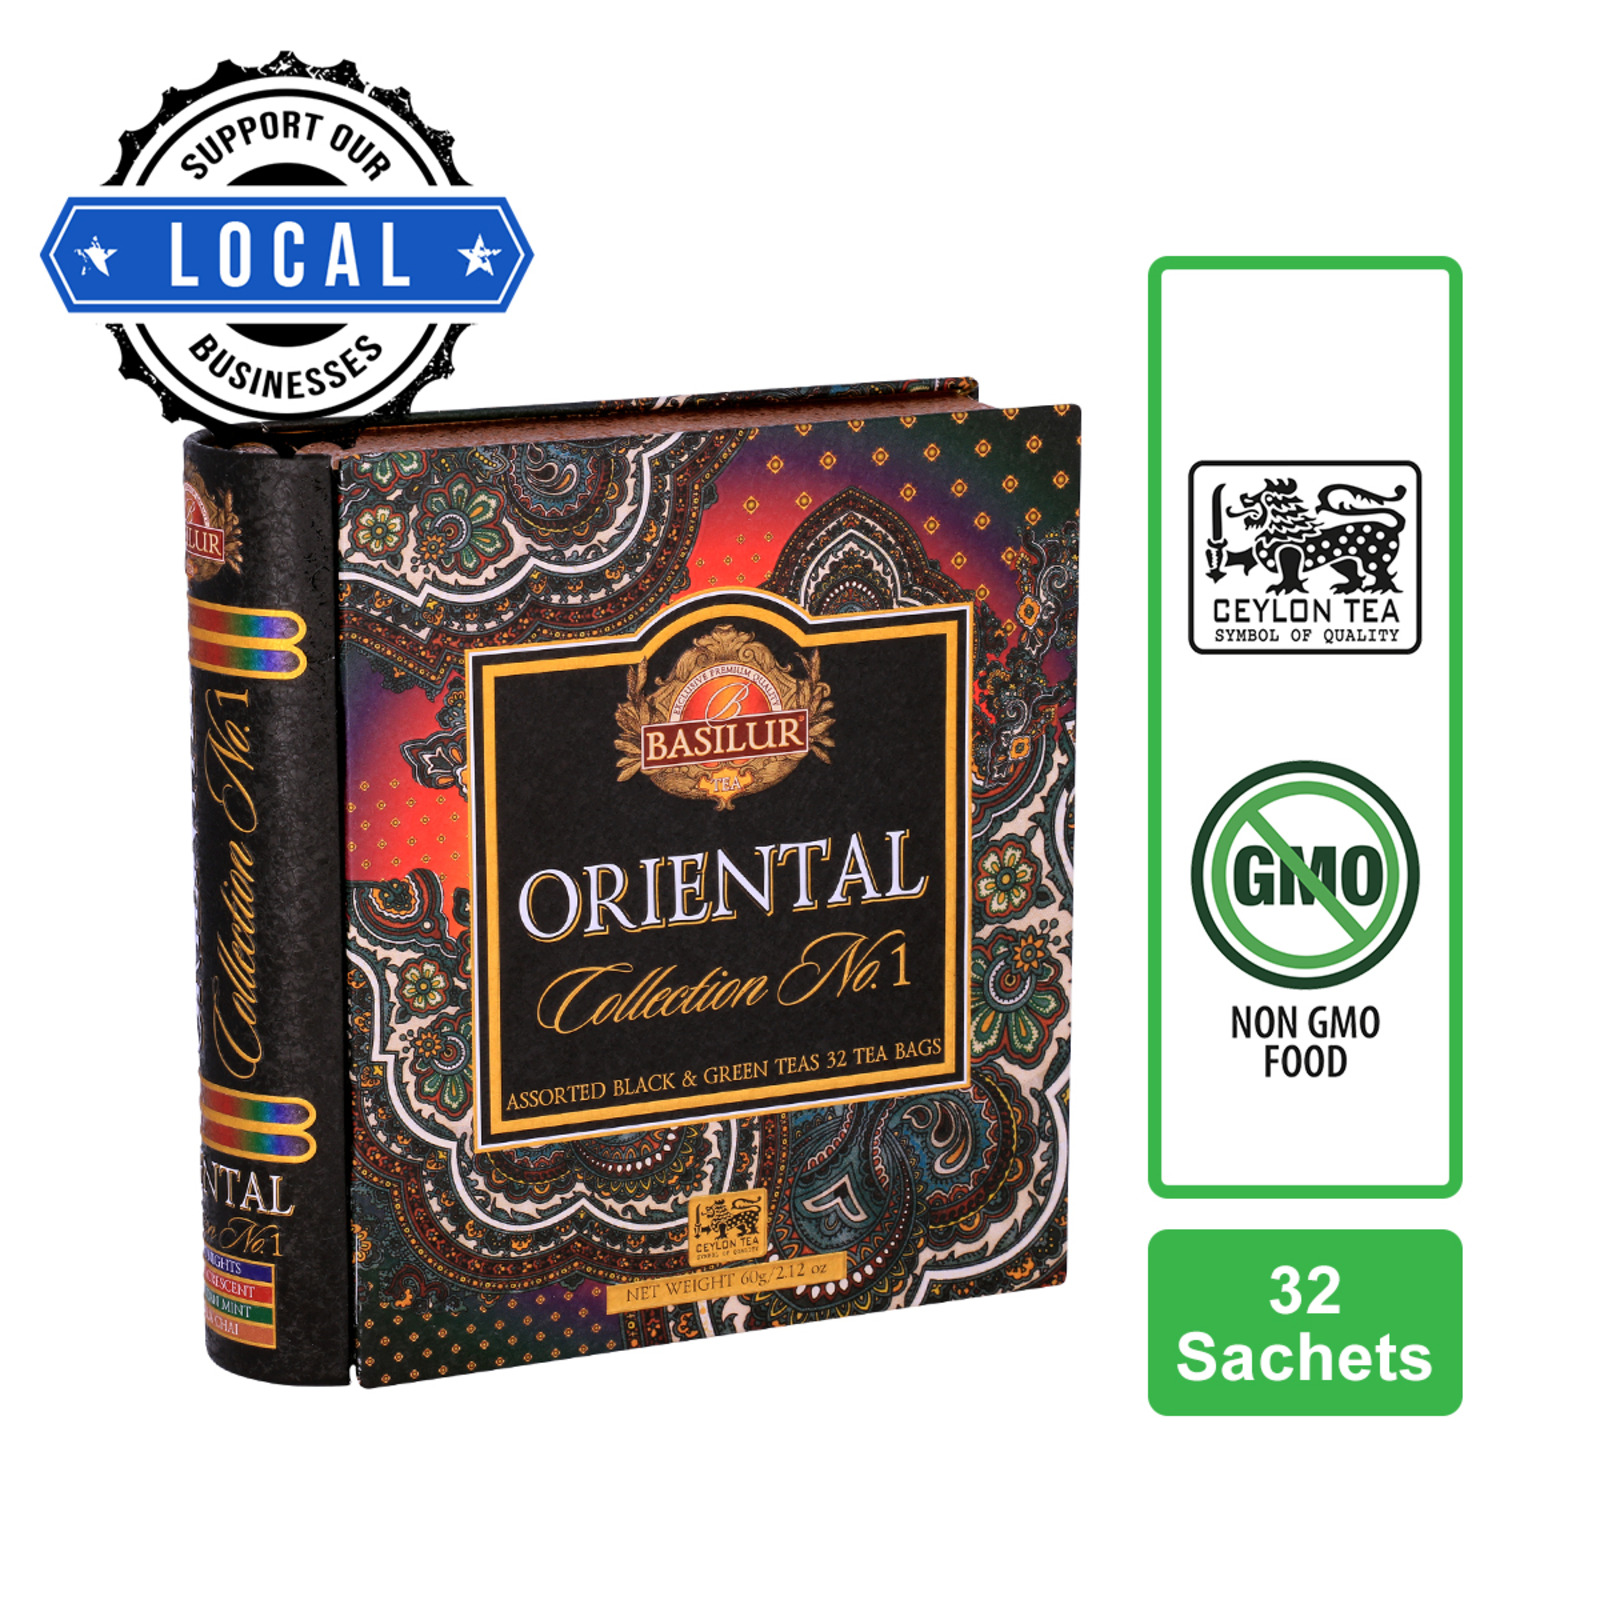 Basilur Assorted Book - Oriental Tea